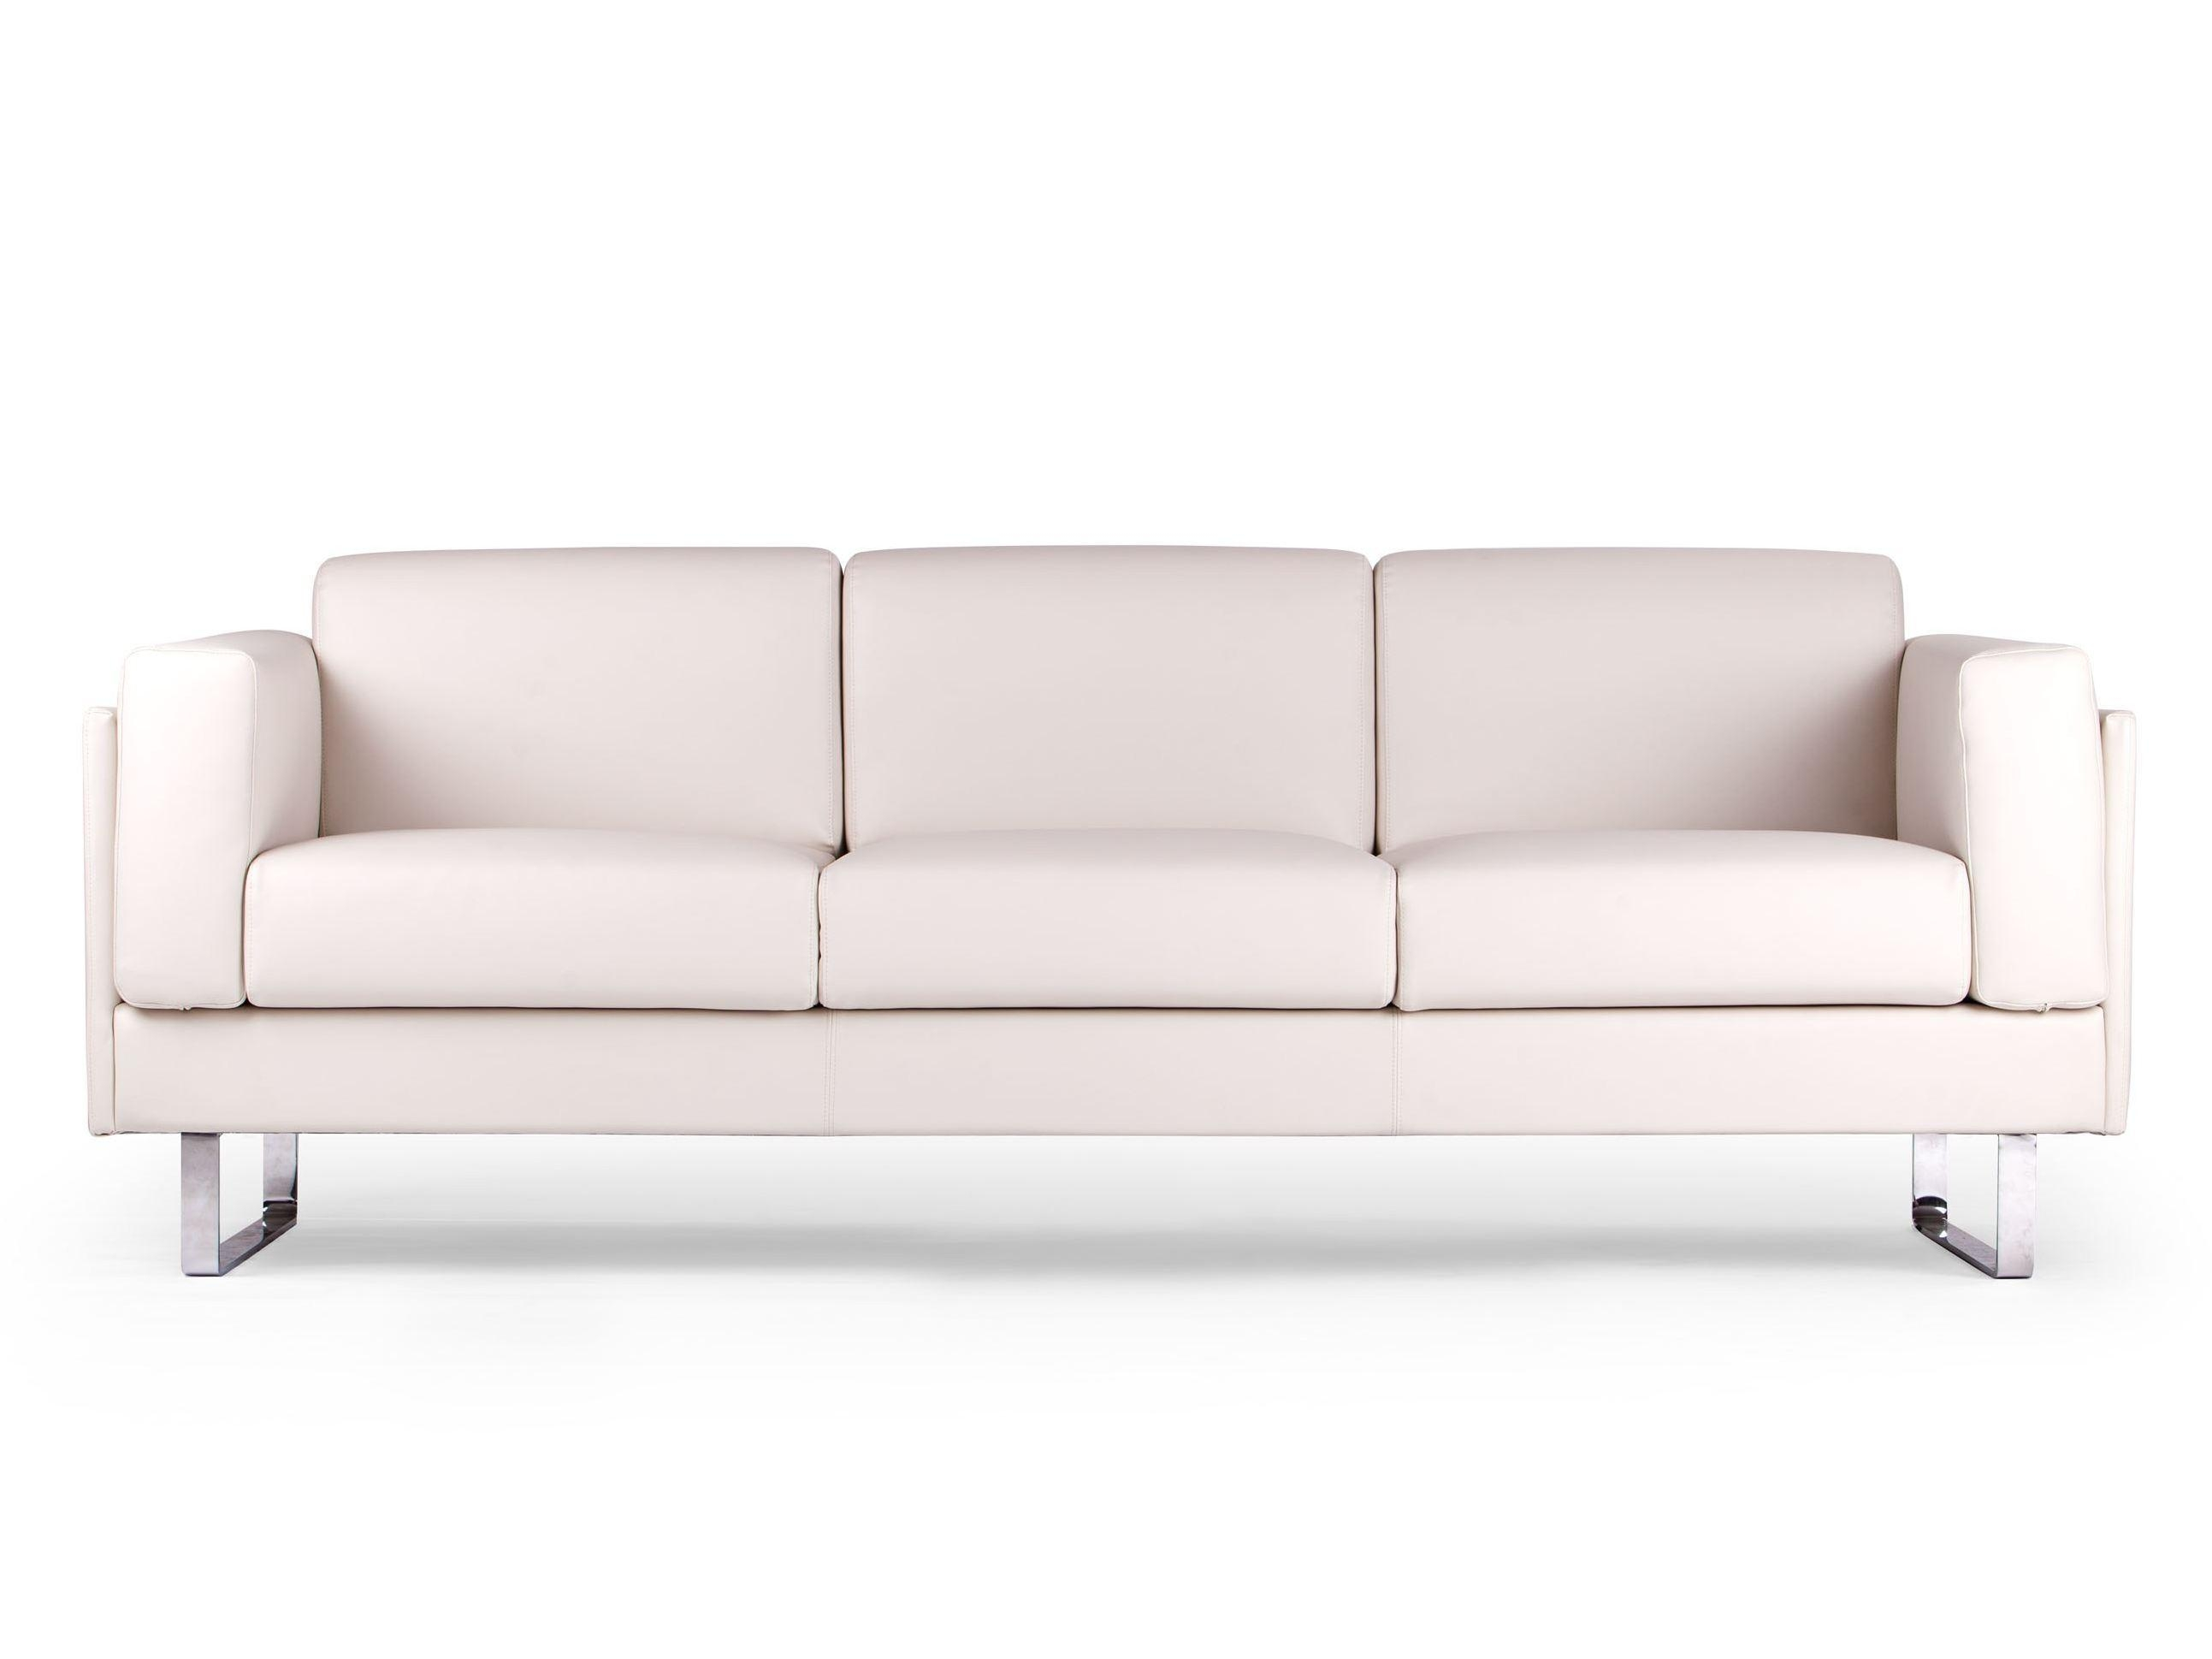 Sofas Center : Seater Sofa Saver Modern Sofas Awesome Picture In Modern 3 Seater Sofas (View 18 of 20)